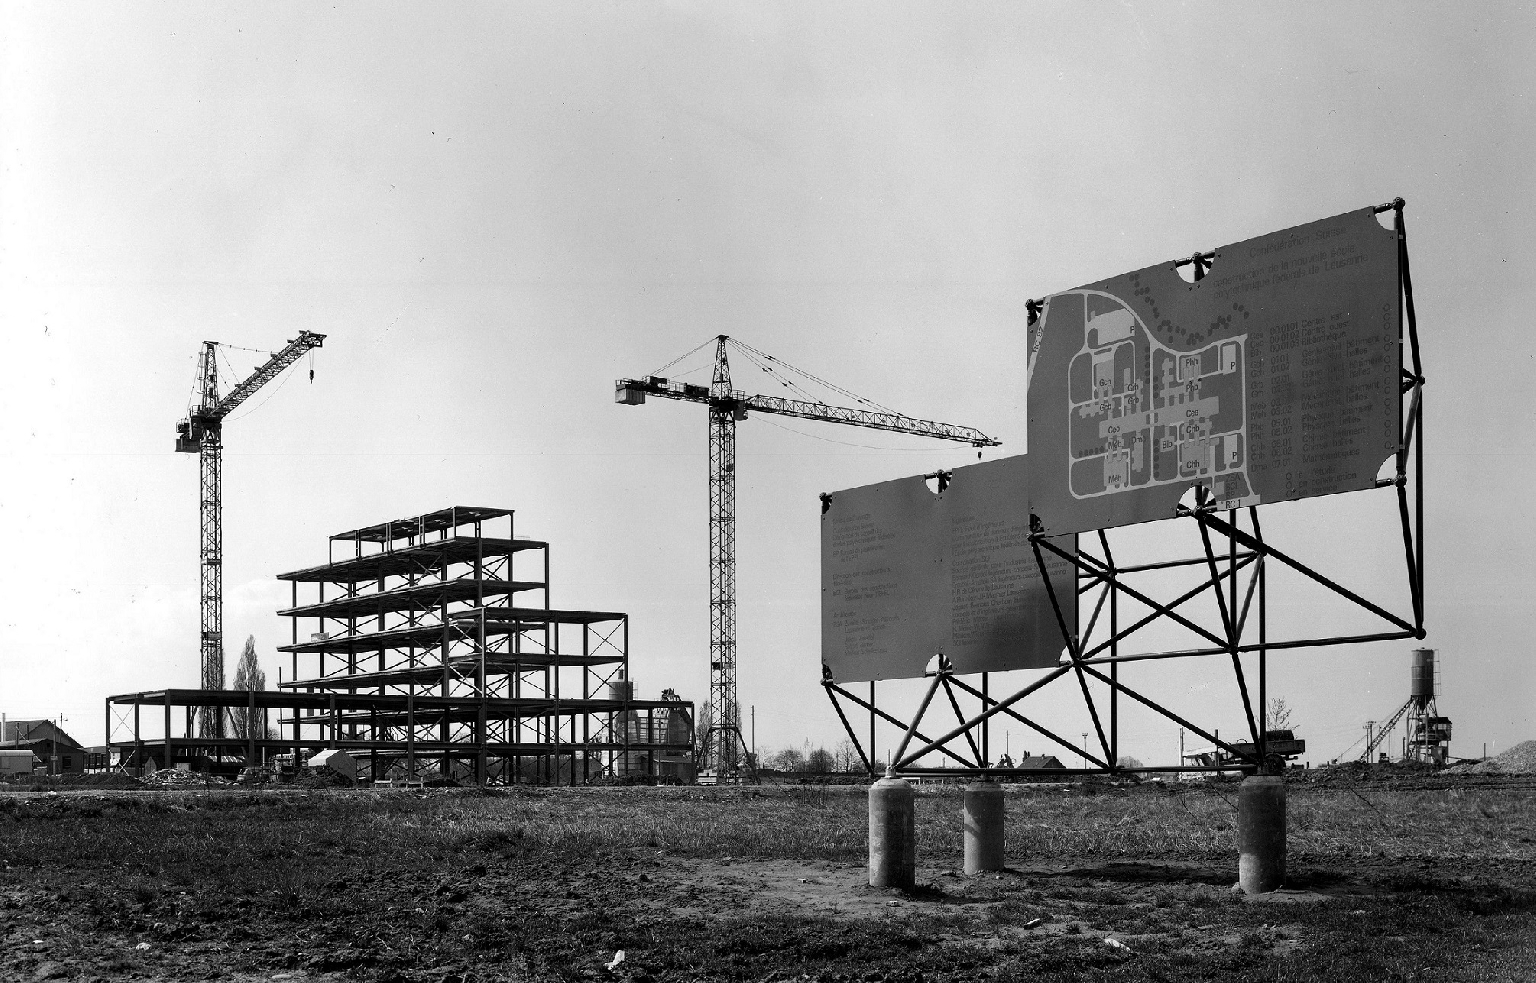 Le chantier des halles de chimie, EPFL, avril 1975 (Médiathèque EPFL, photo Henri Germond, CC/ACM)